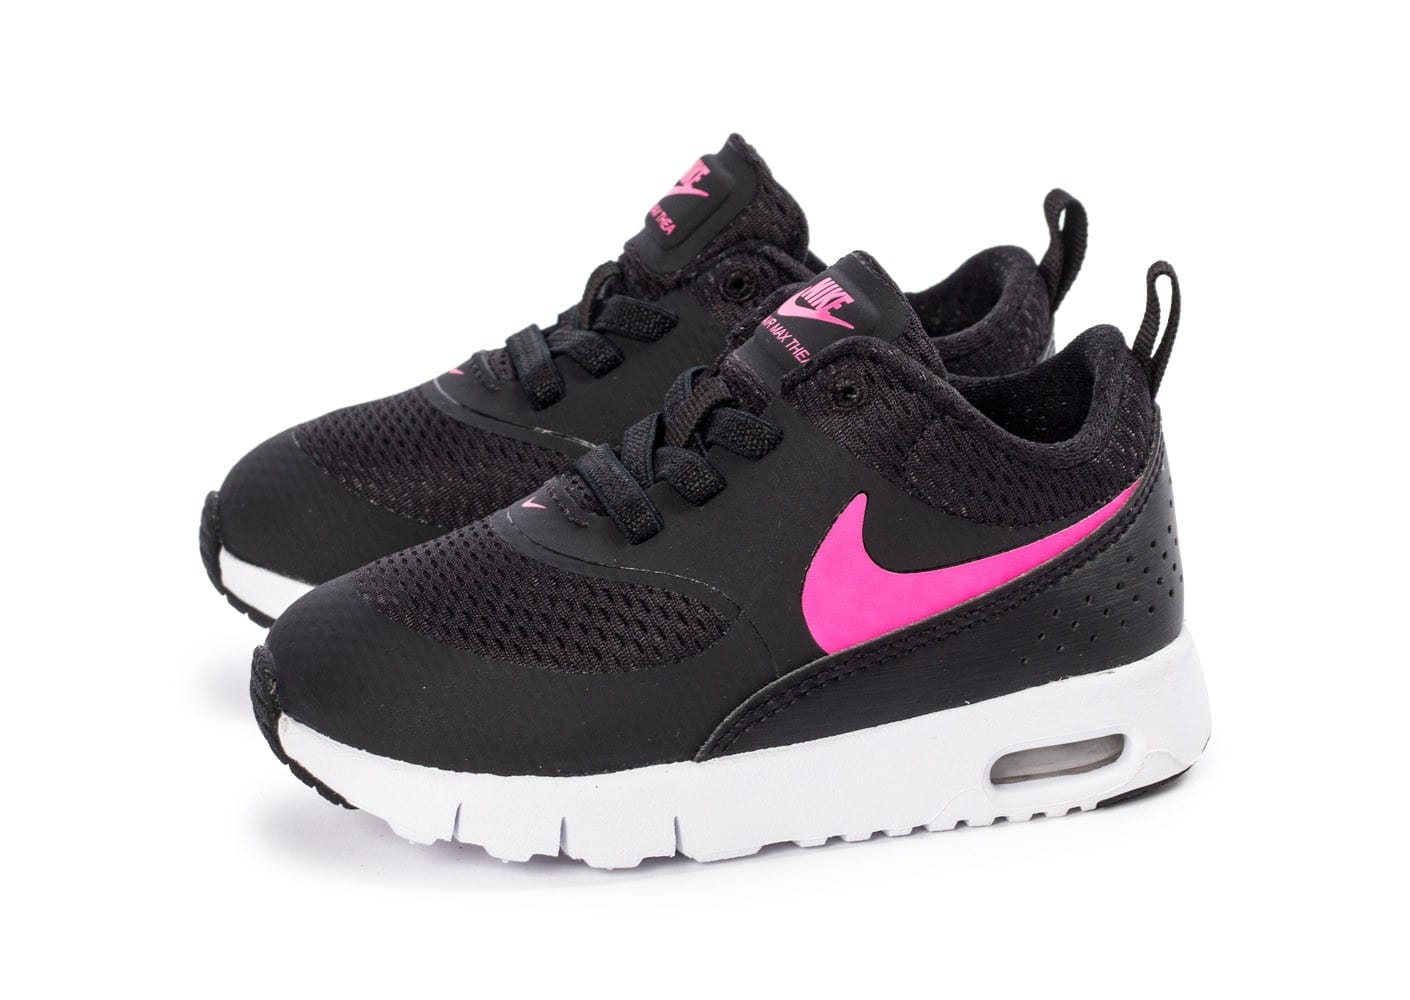 nike air max thea b b noire et rose chaussures enfant. Black Bedroom Furniture Sets. Home Design Ideas